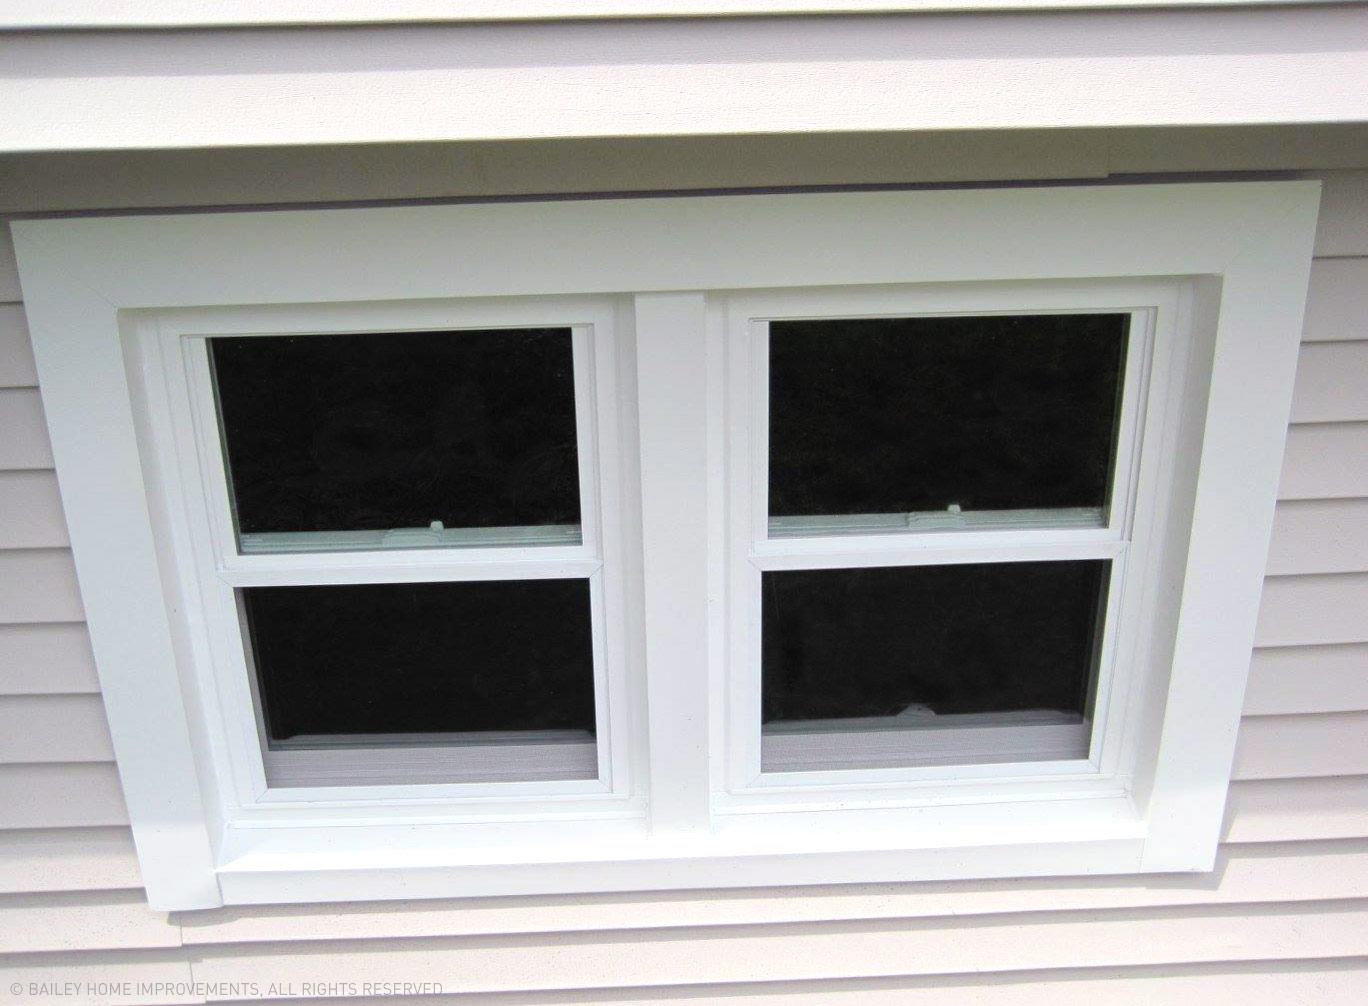 Garden Level Windows by Bailey Home Improvements